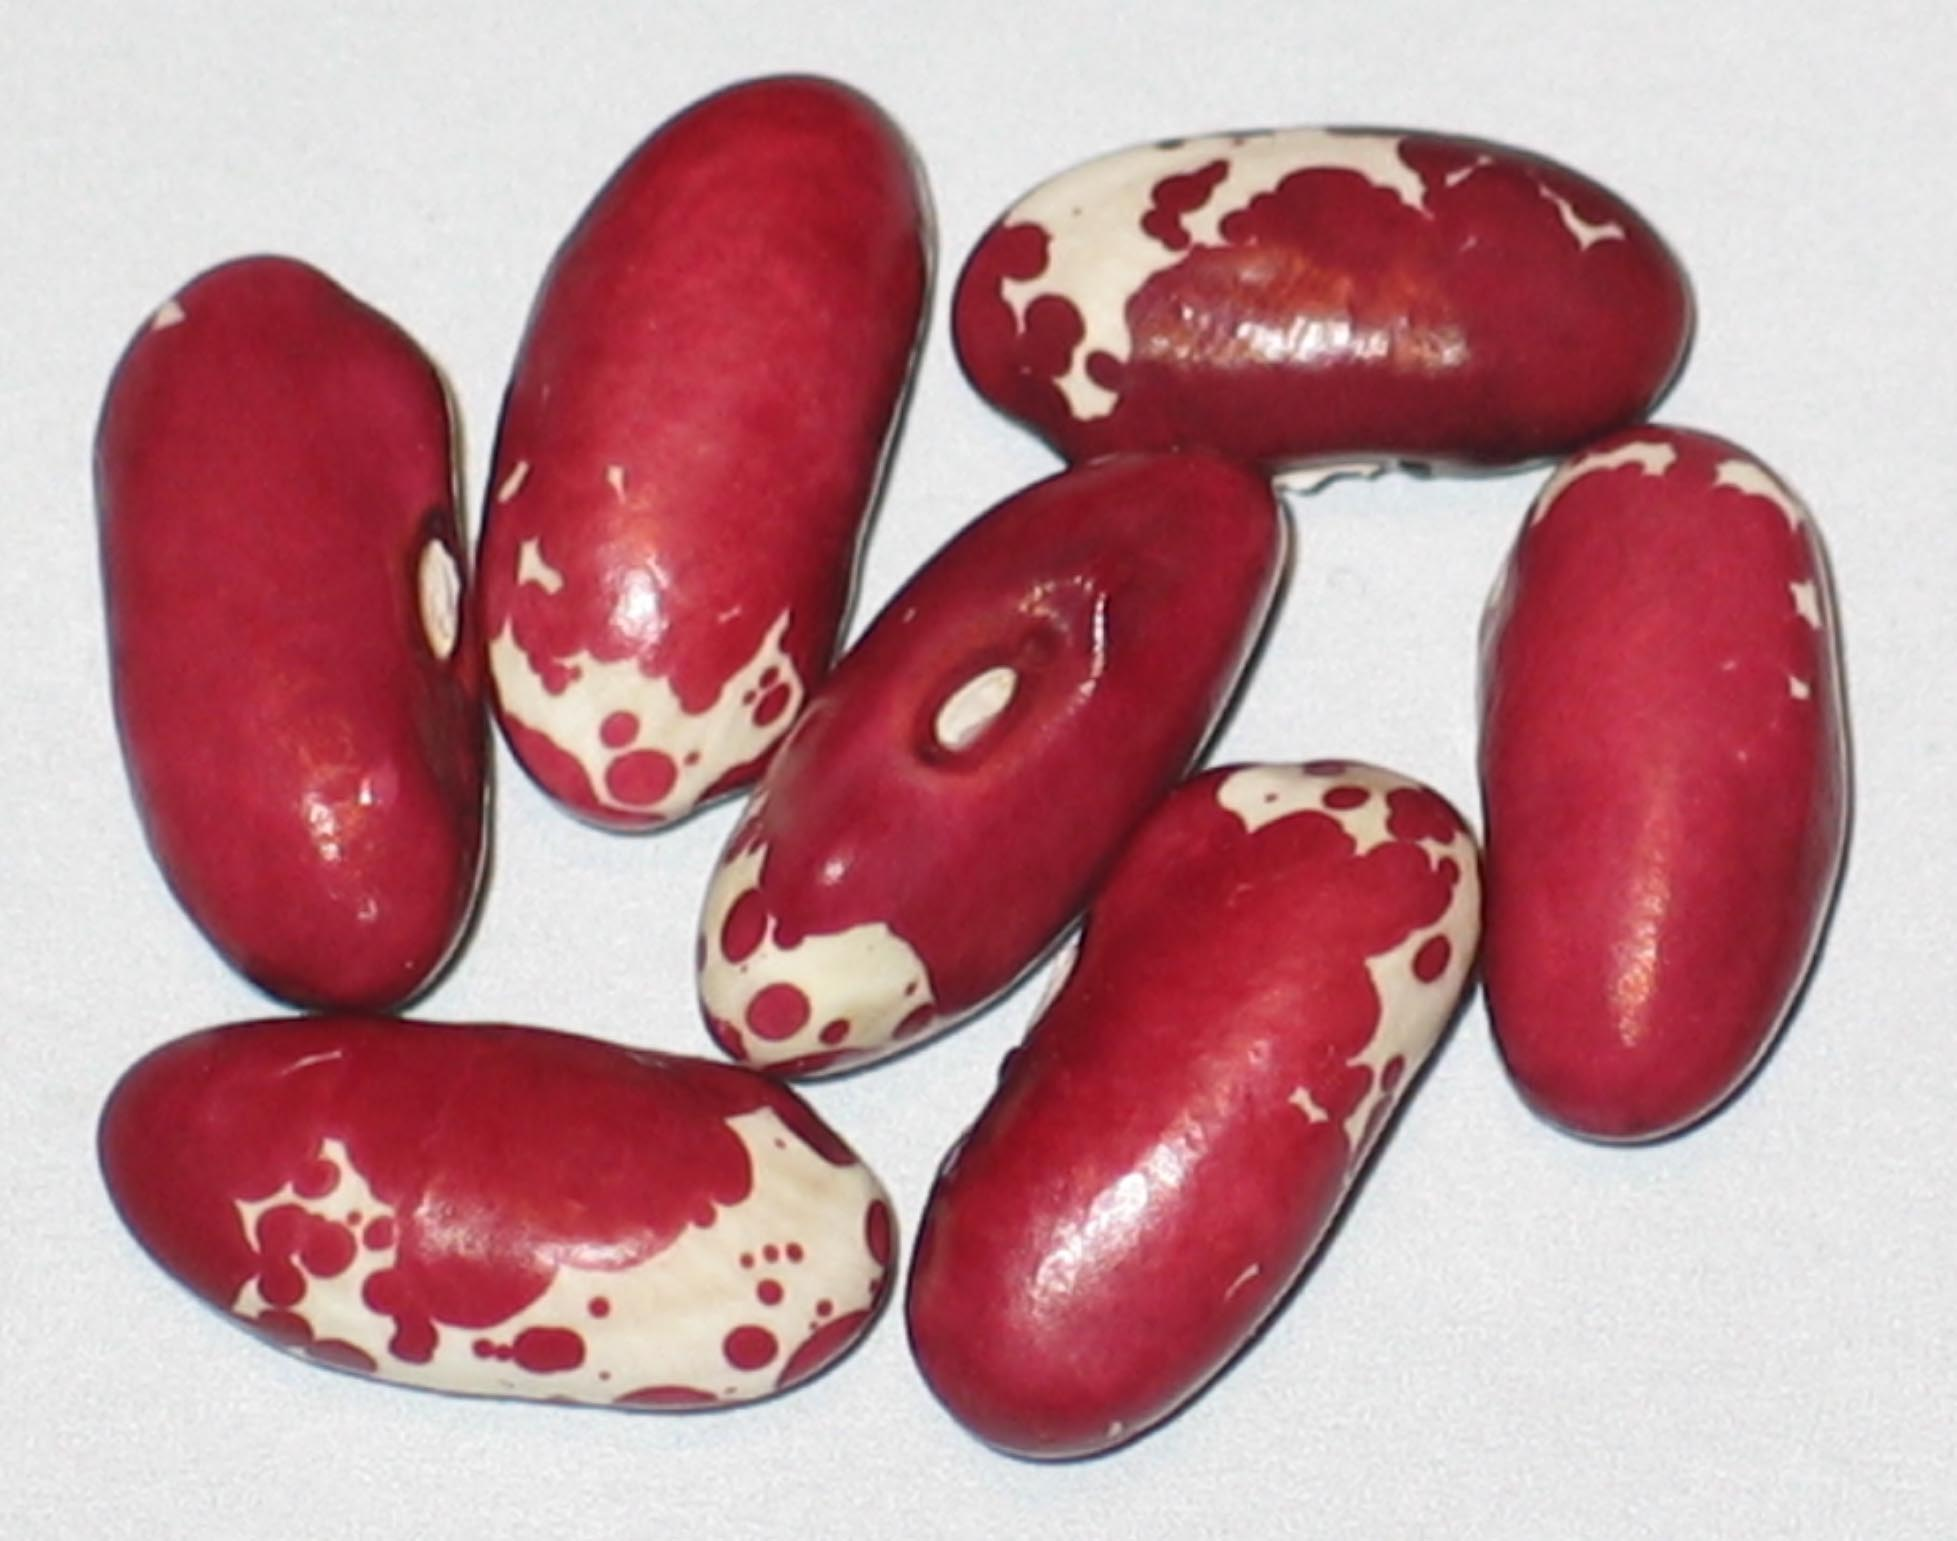 image of Mammoth Trout beans